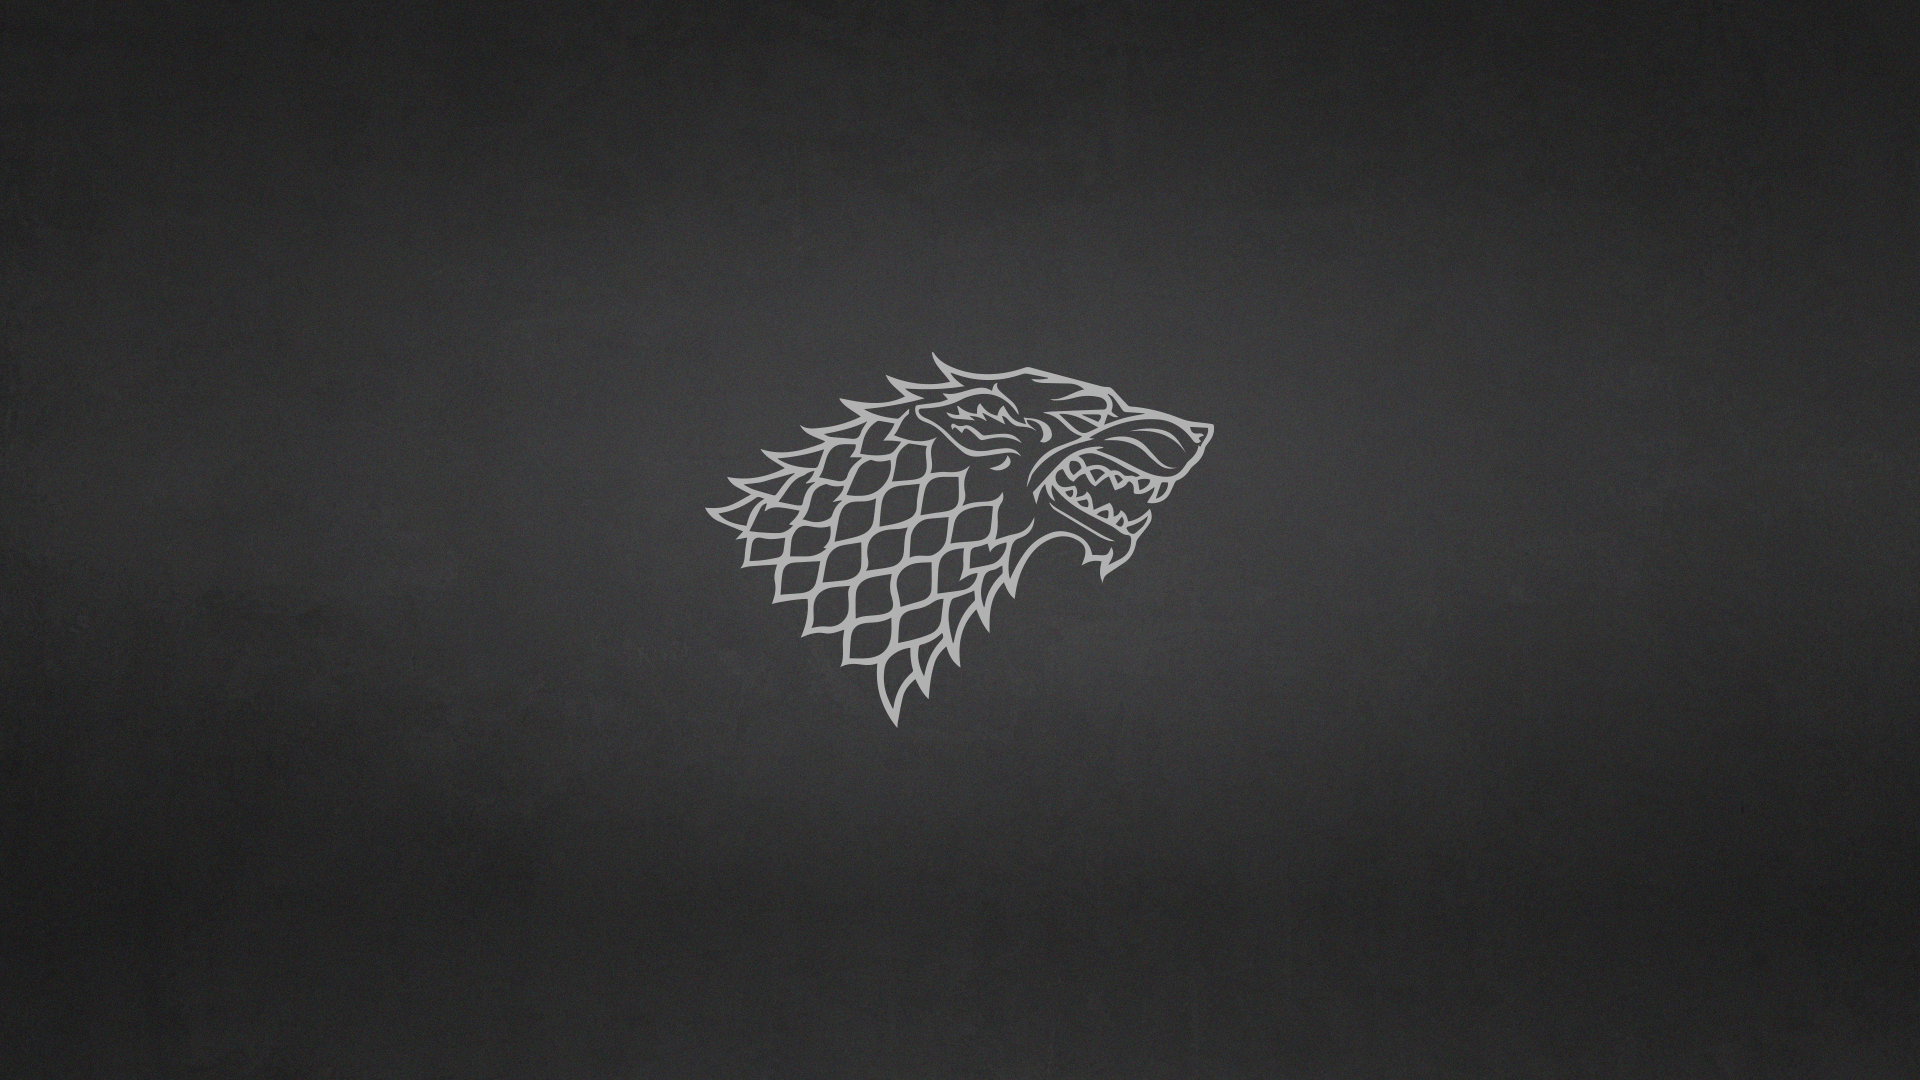 Game of Thrones: House Stark Minimalist Wallpaper by ...